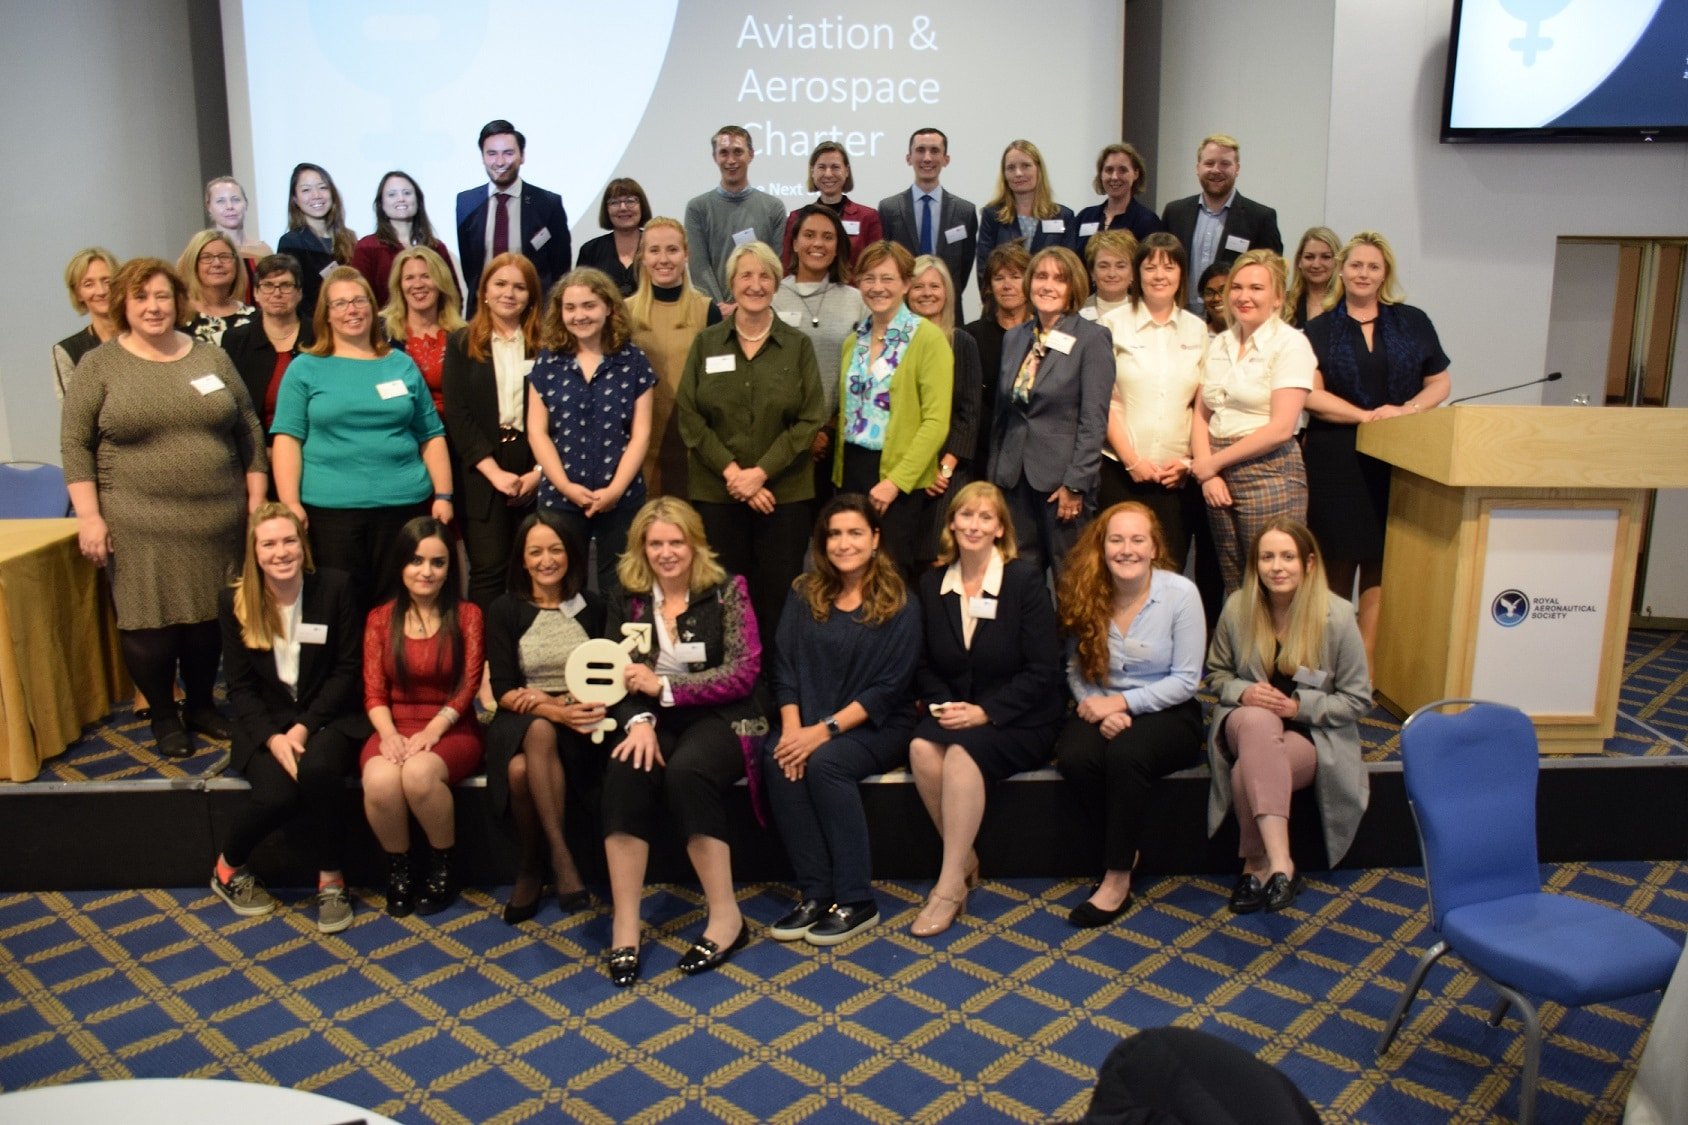 new charter for women in aviation  u0026 aerospace to support greater gender diversity